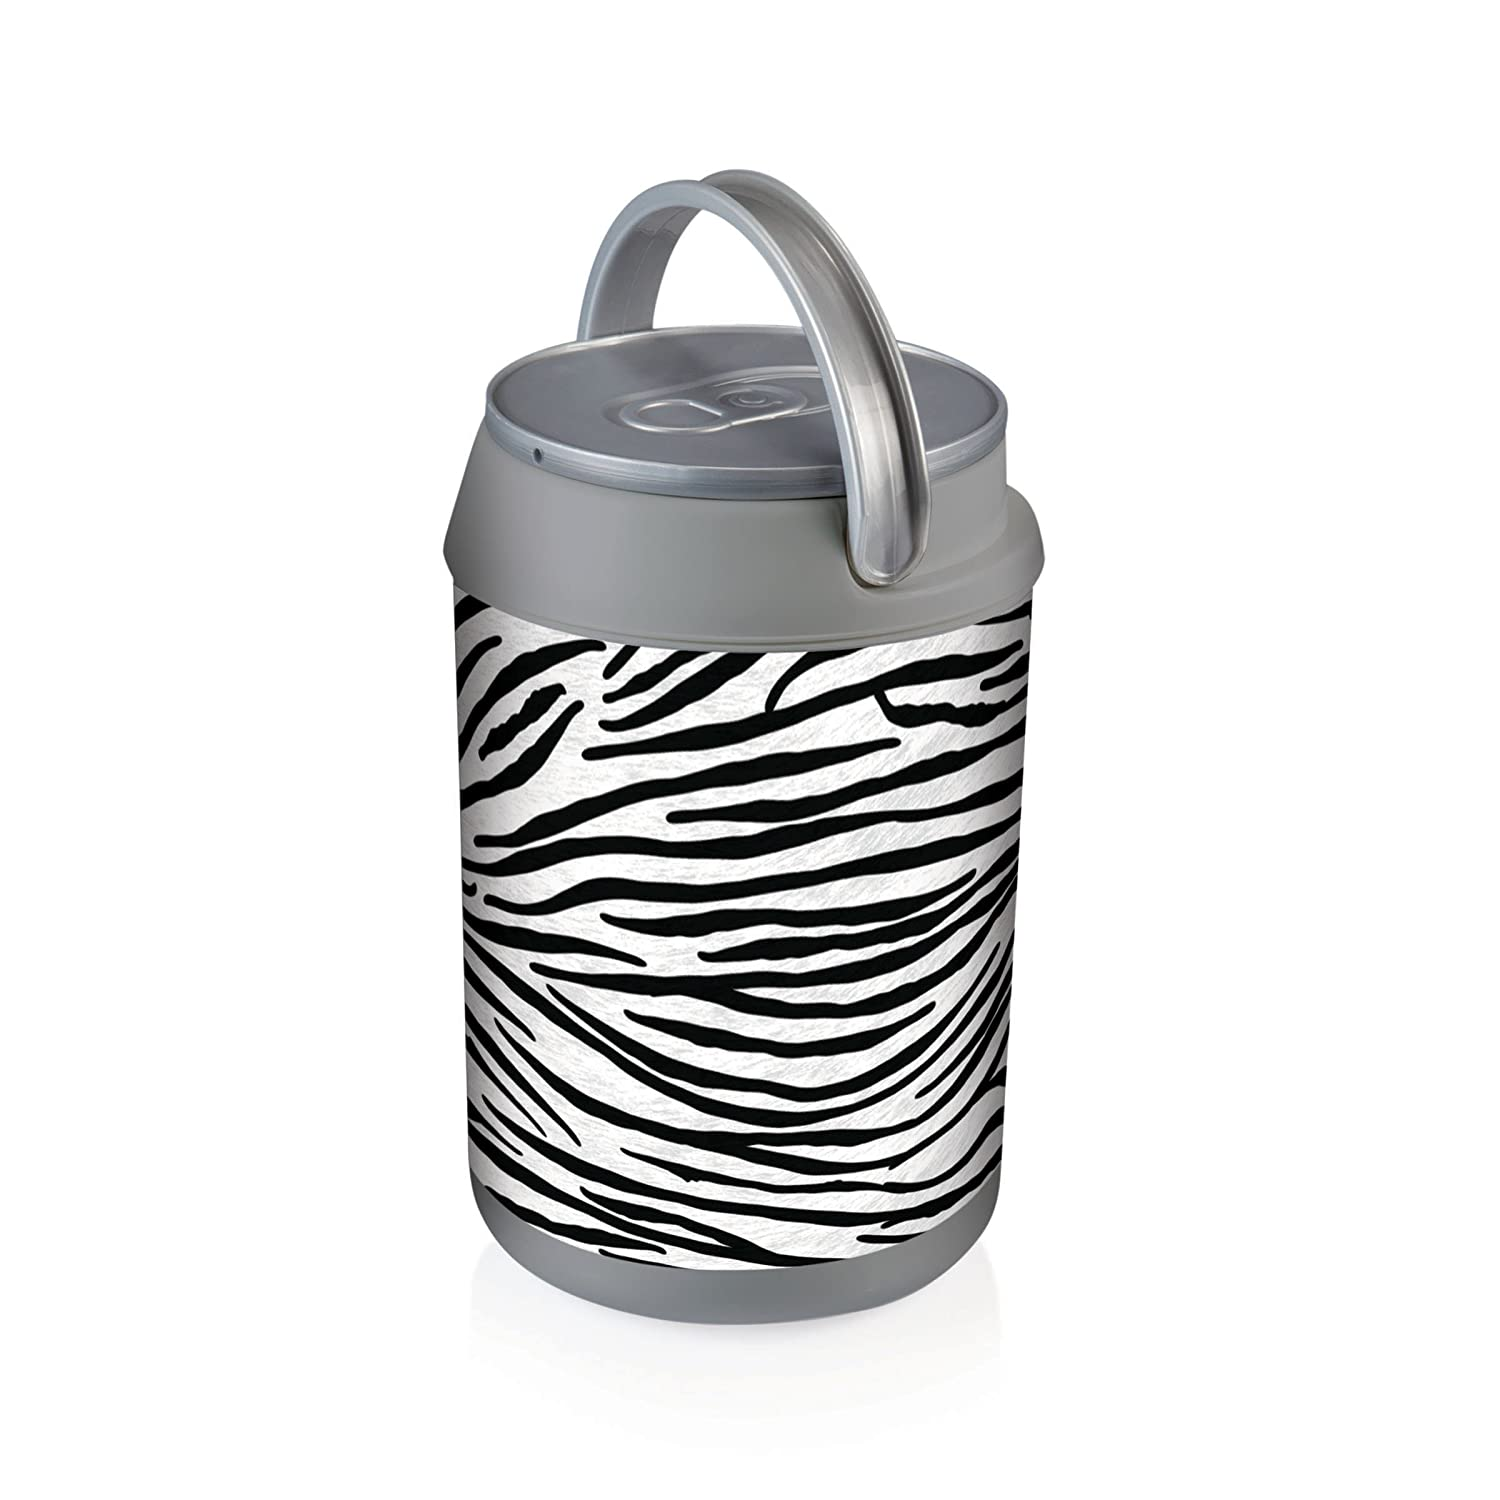 Picnic Time Mini 6-Can Cooler.